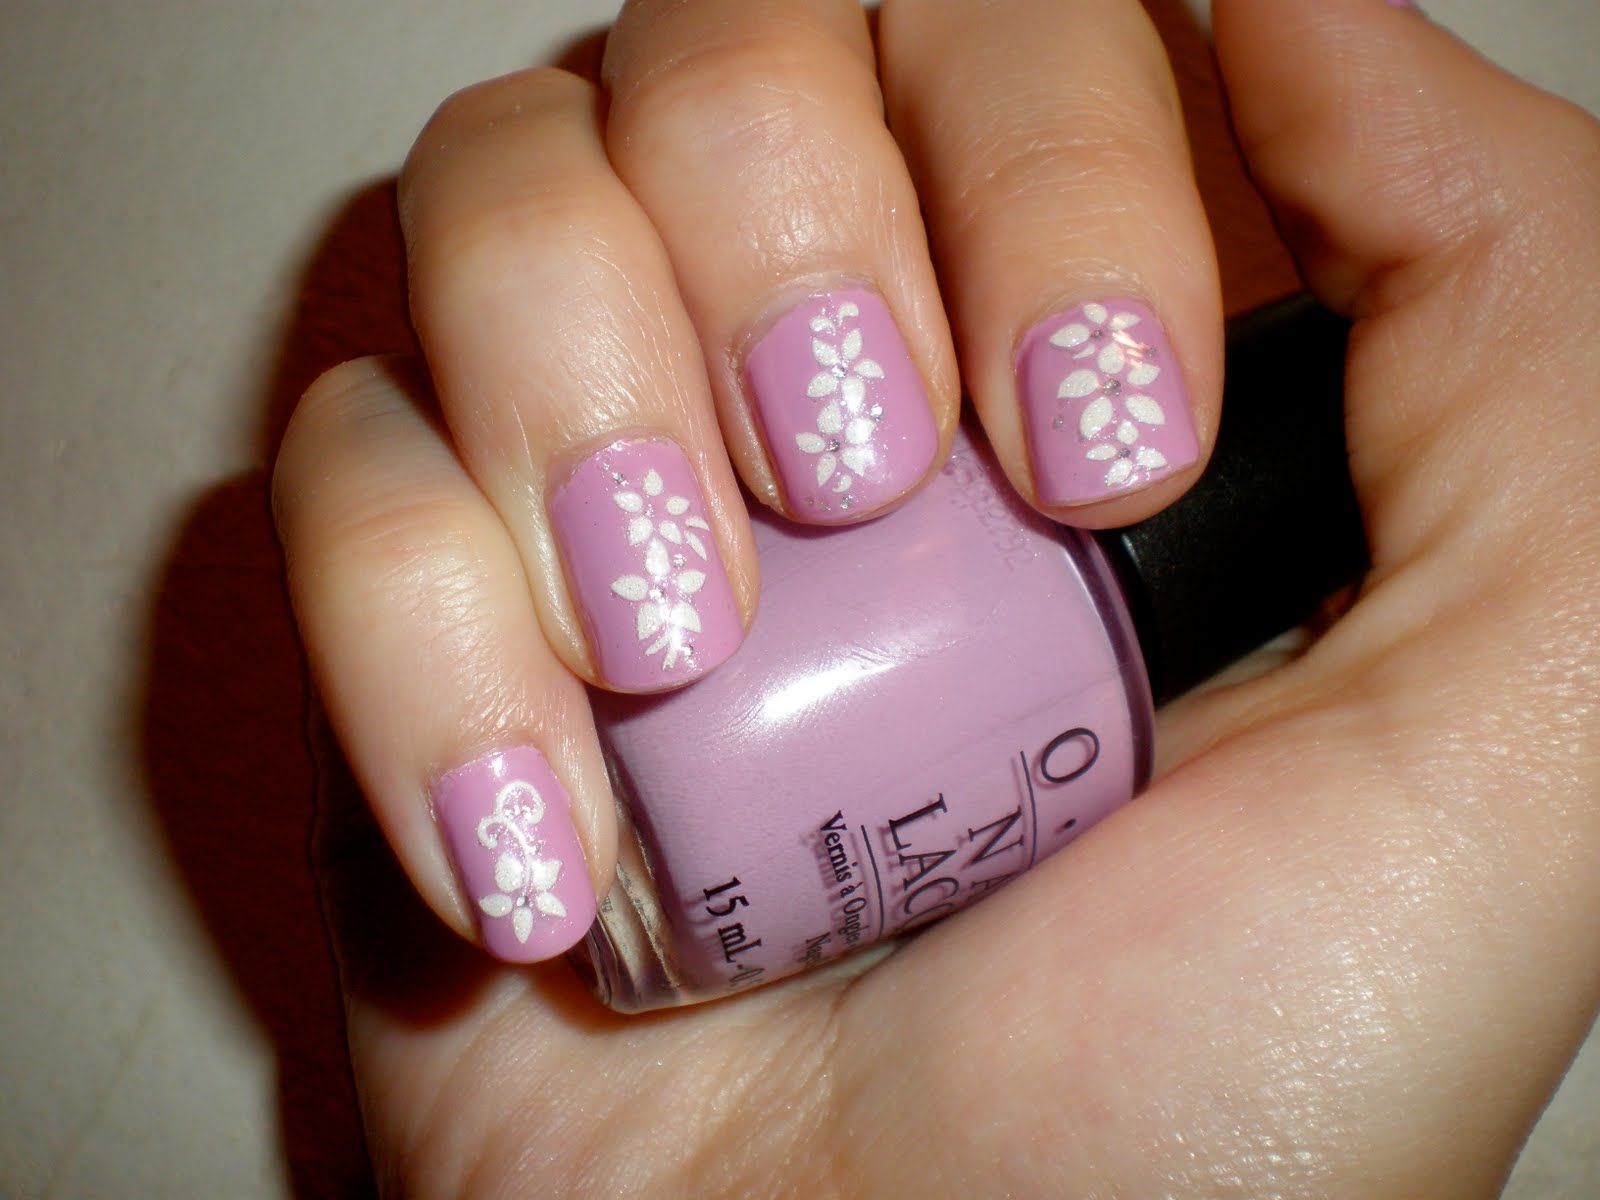 easy nail ideas purple flower easy nail polish designs nail ideas inspiration - Nail Polish Design Ideas